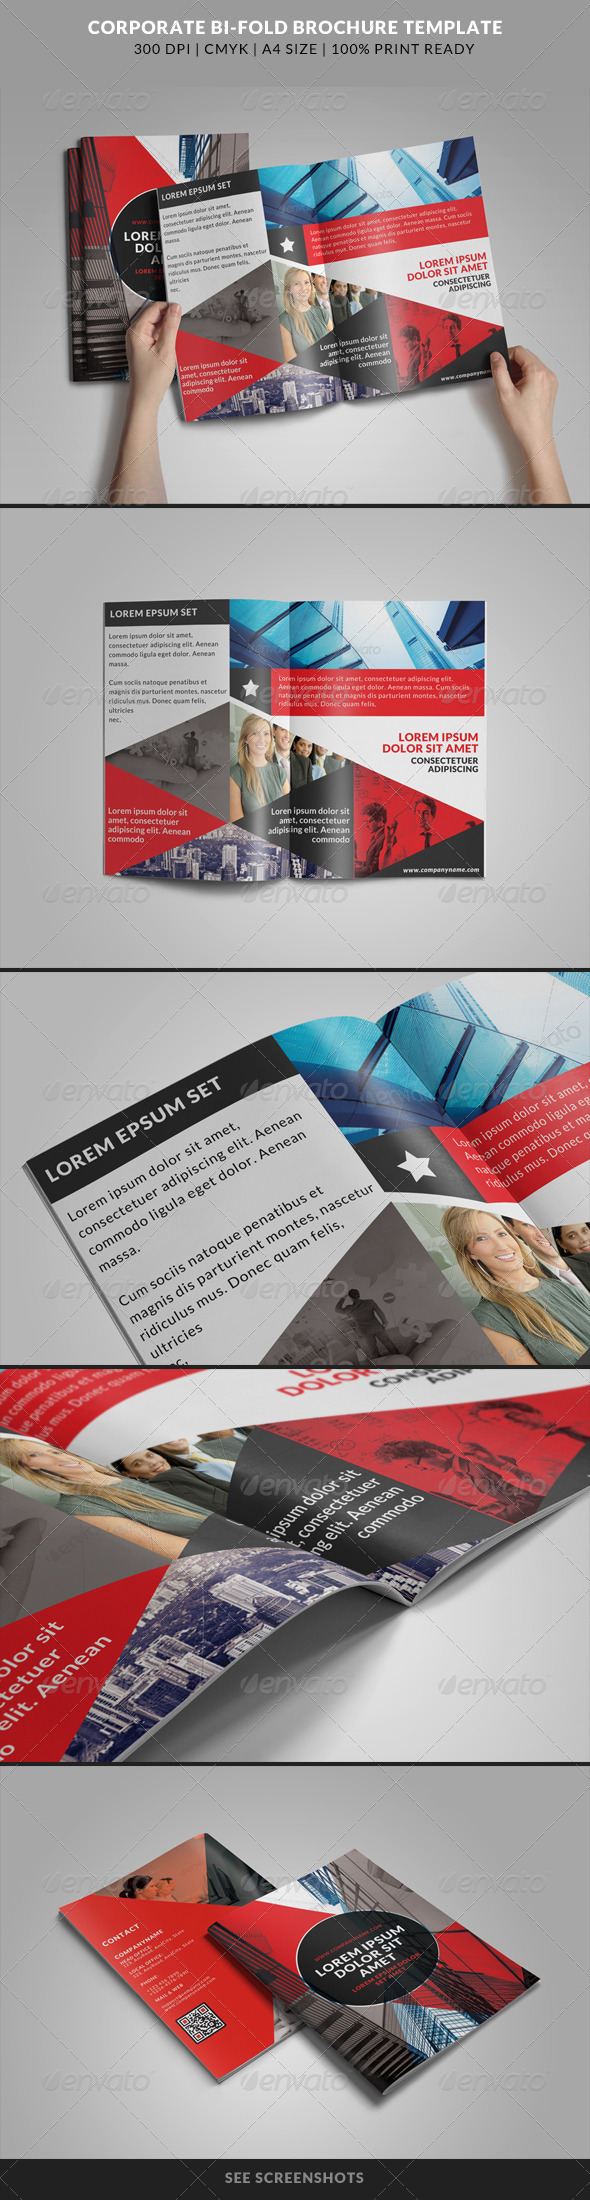 GraphicRiver Corporate Bi-Fold Brochures Template 7 8241159